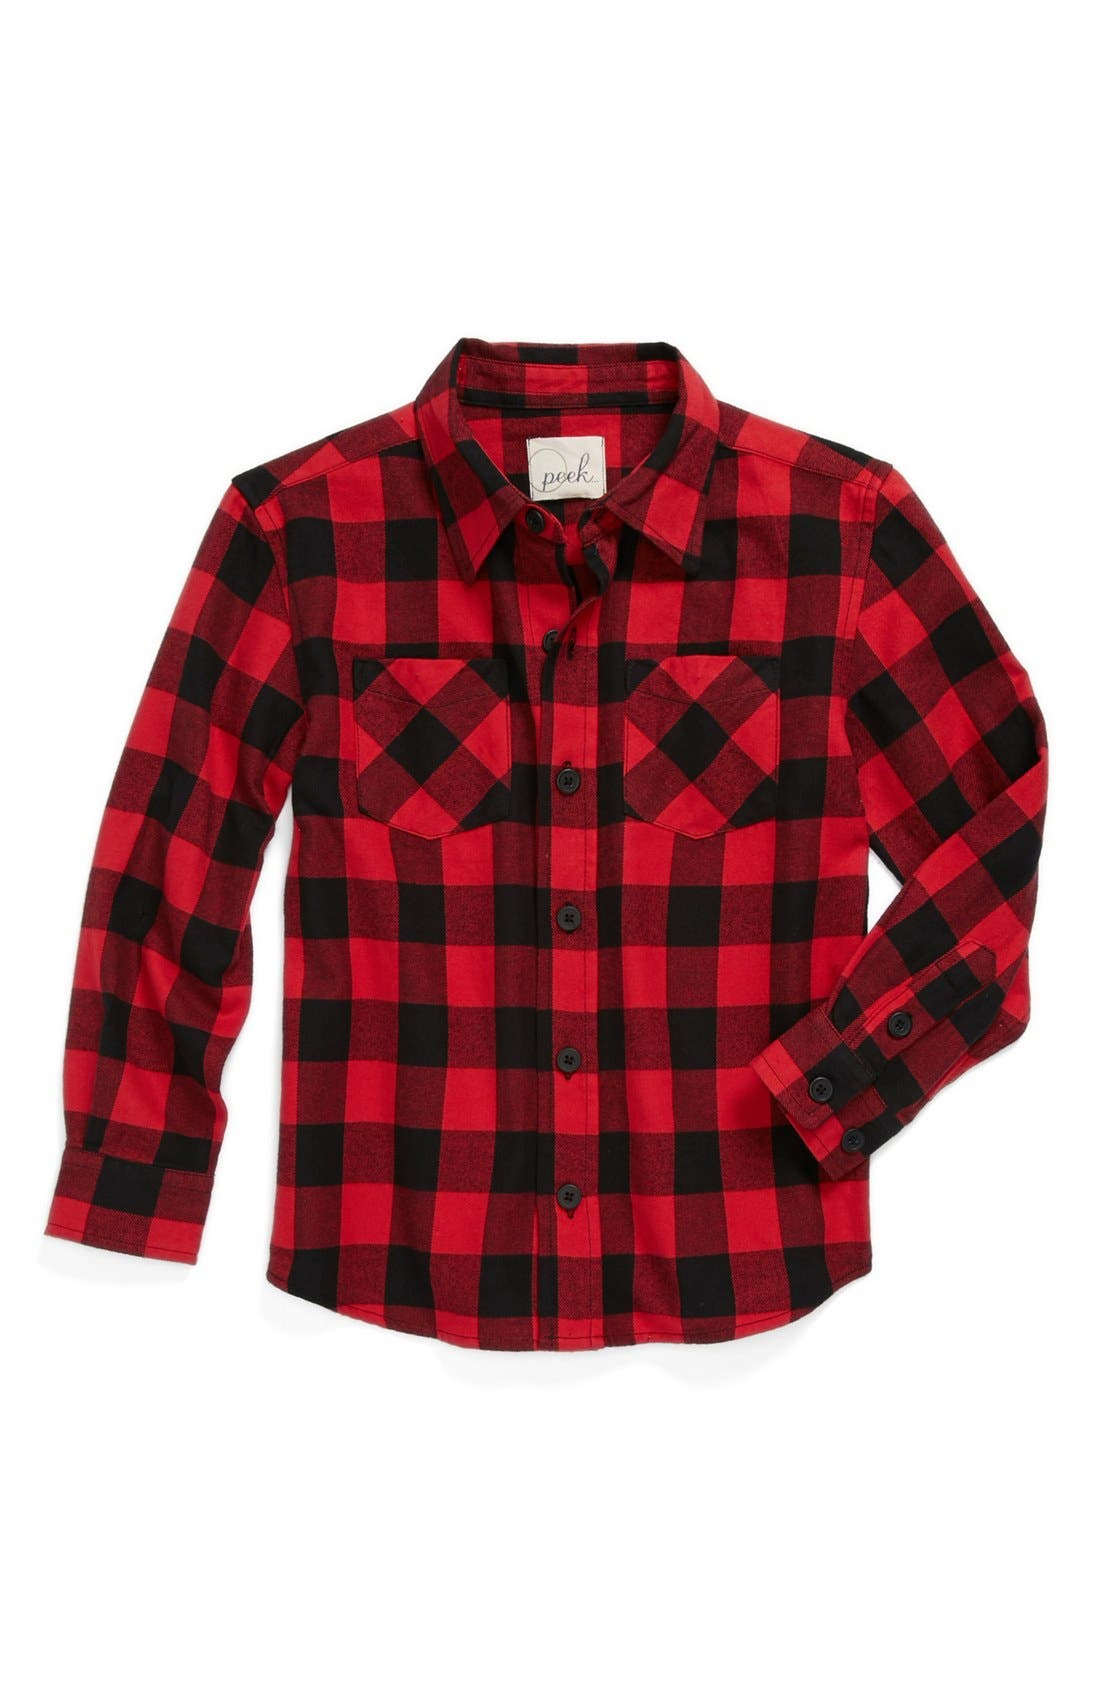 Main Image - Peek 'Buffalo' Plaid Shirt (Toddler Boys, Little Boys & Big Boys)